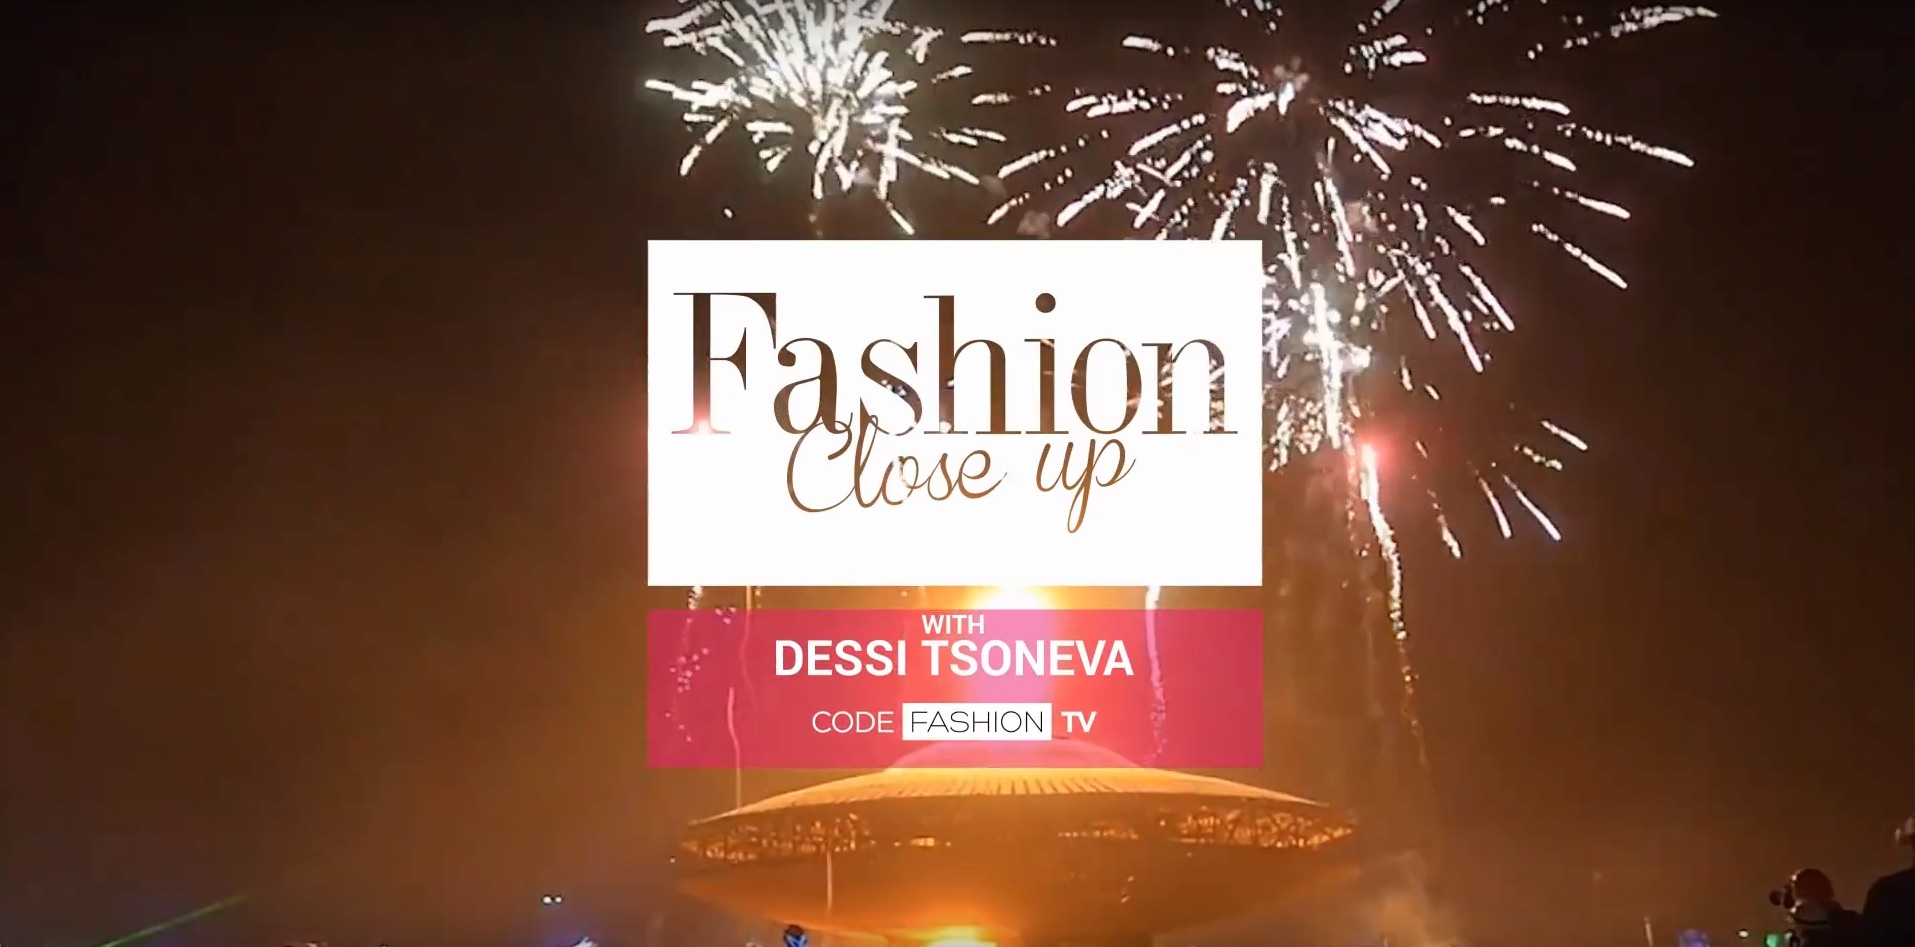 Fashion CloseUp with Dessi Tsoneva | INTRO